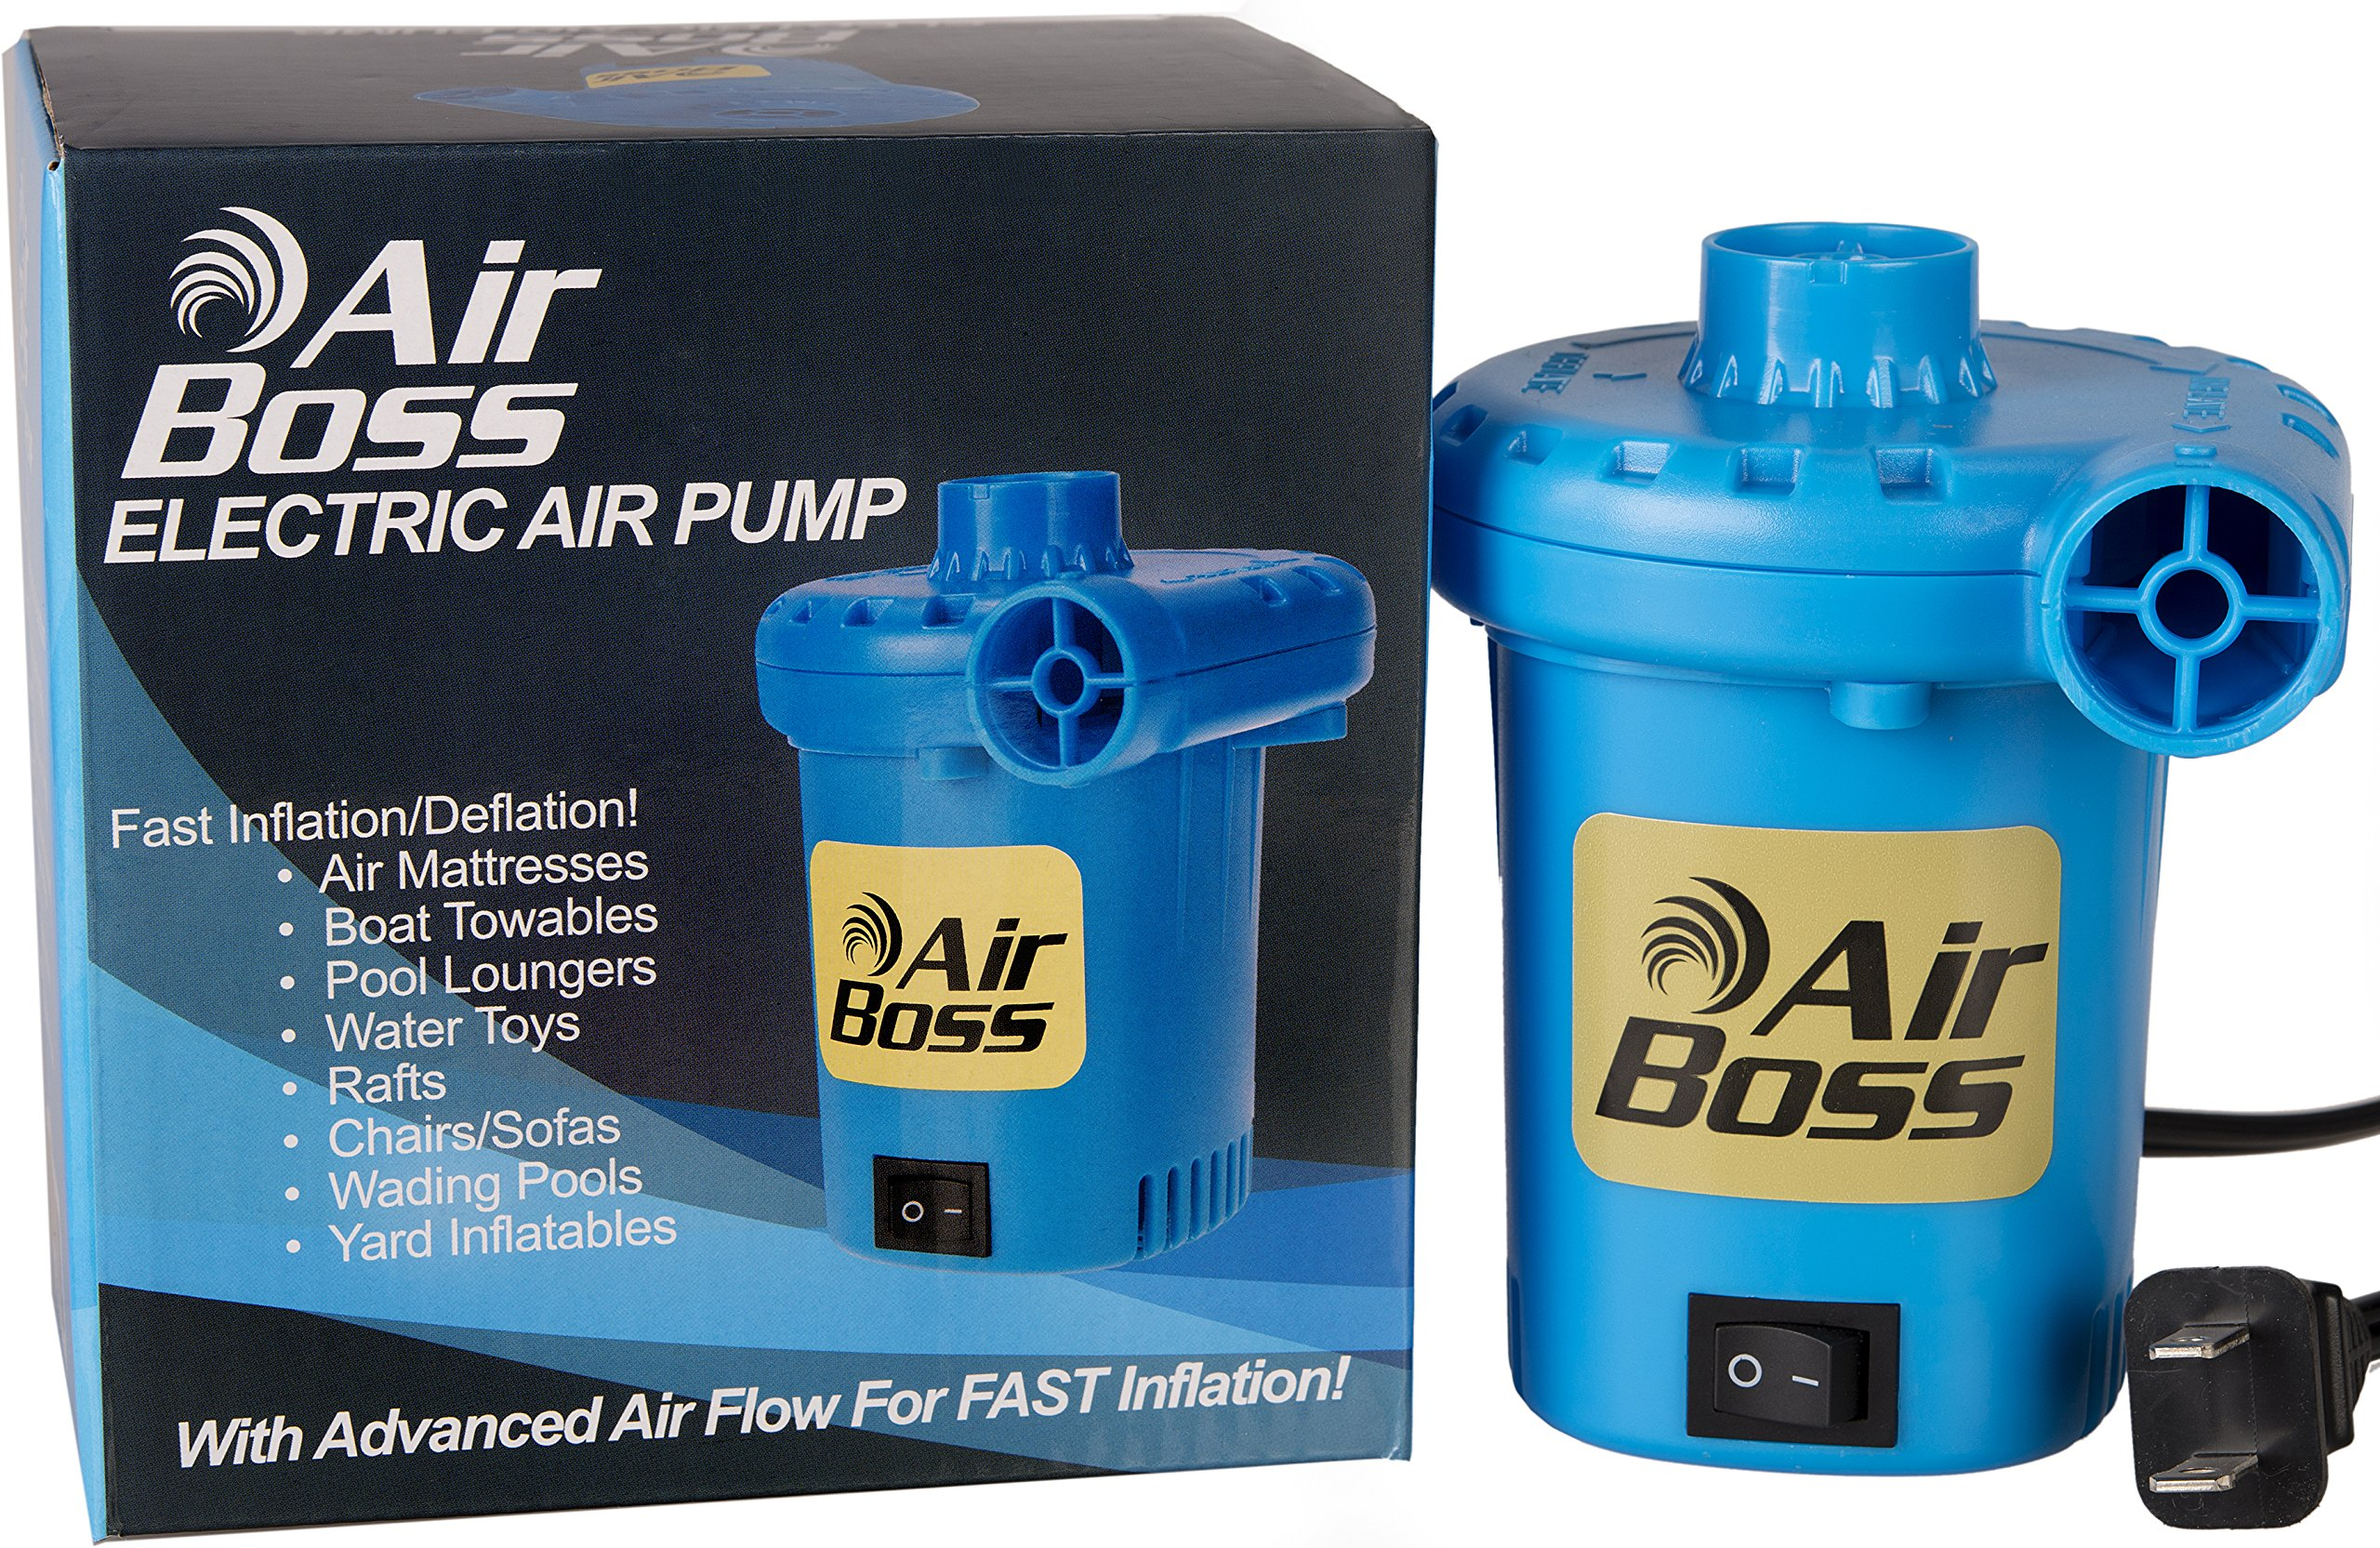 VERY FAST Electric Air Pump For Inflatables, 1,000 Liters of Air Per Minute! 3-Times Faster Than Similar Looking Units, Air Mattress, Bed, Pool Float, Raft, Boat Toys, Plus 3-Year Replacement!